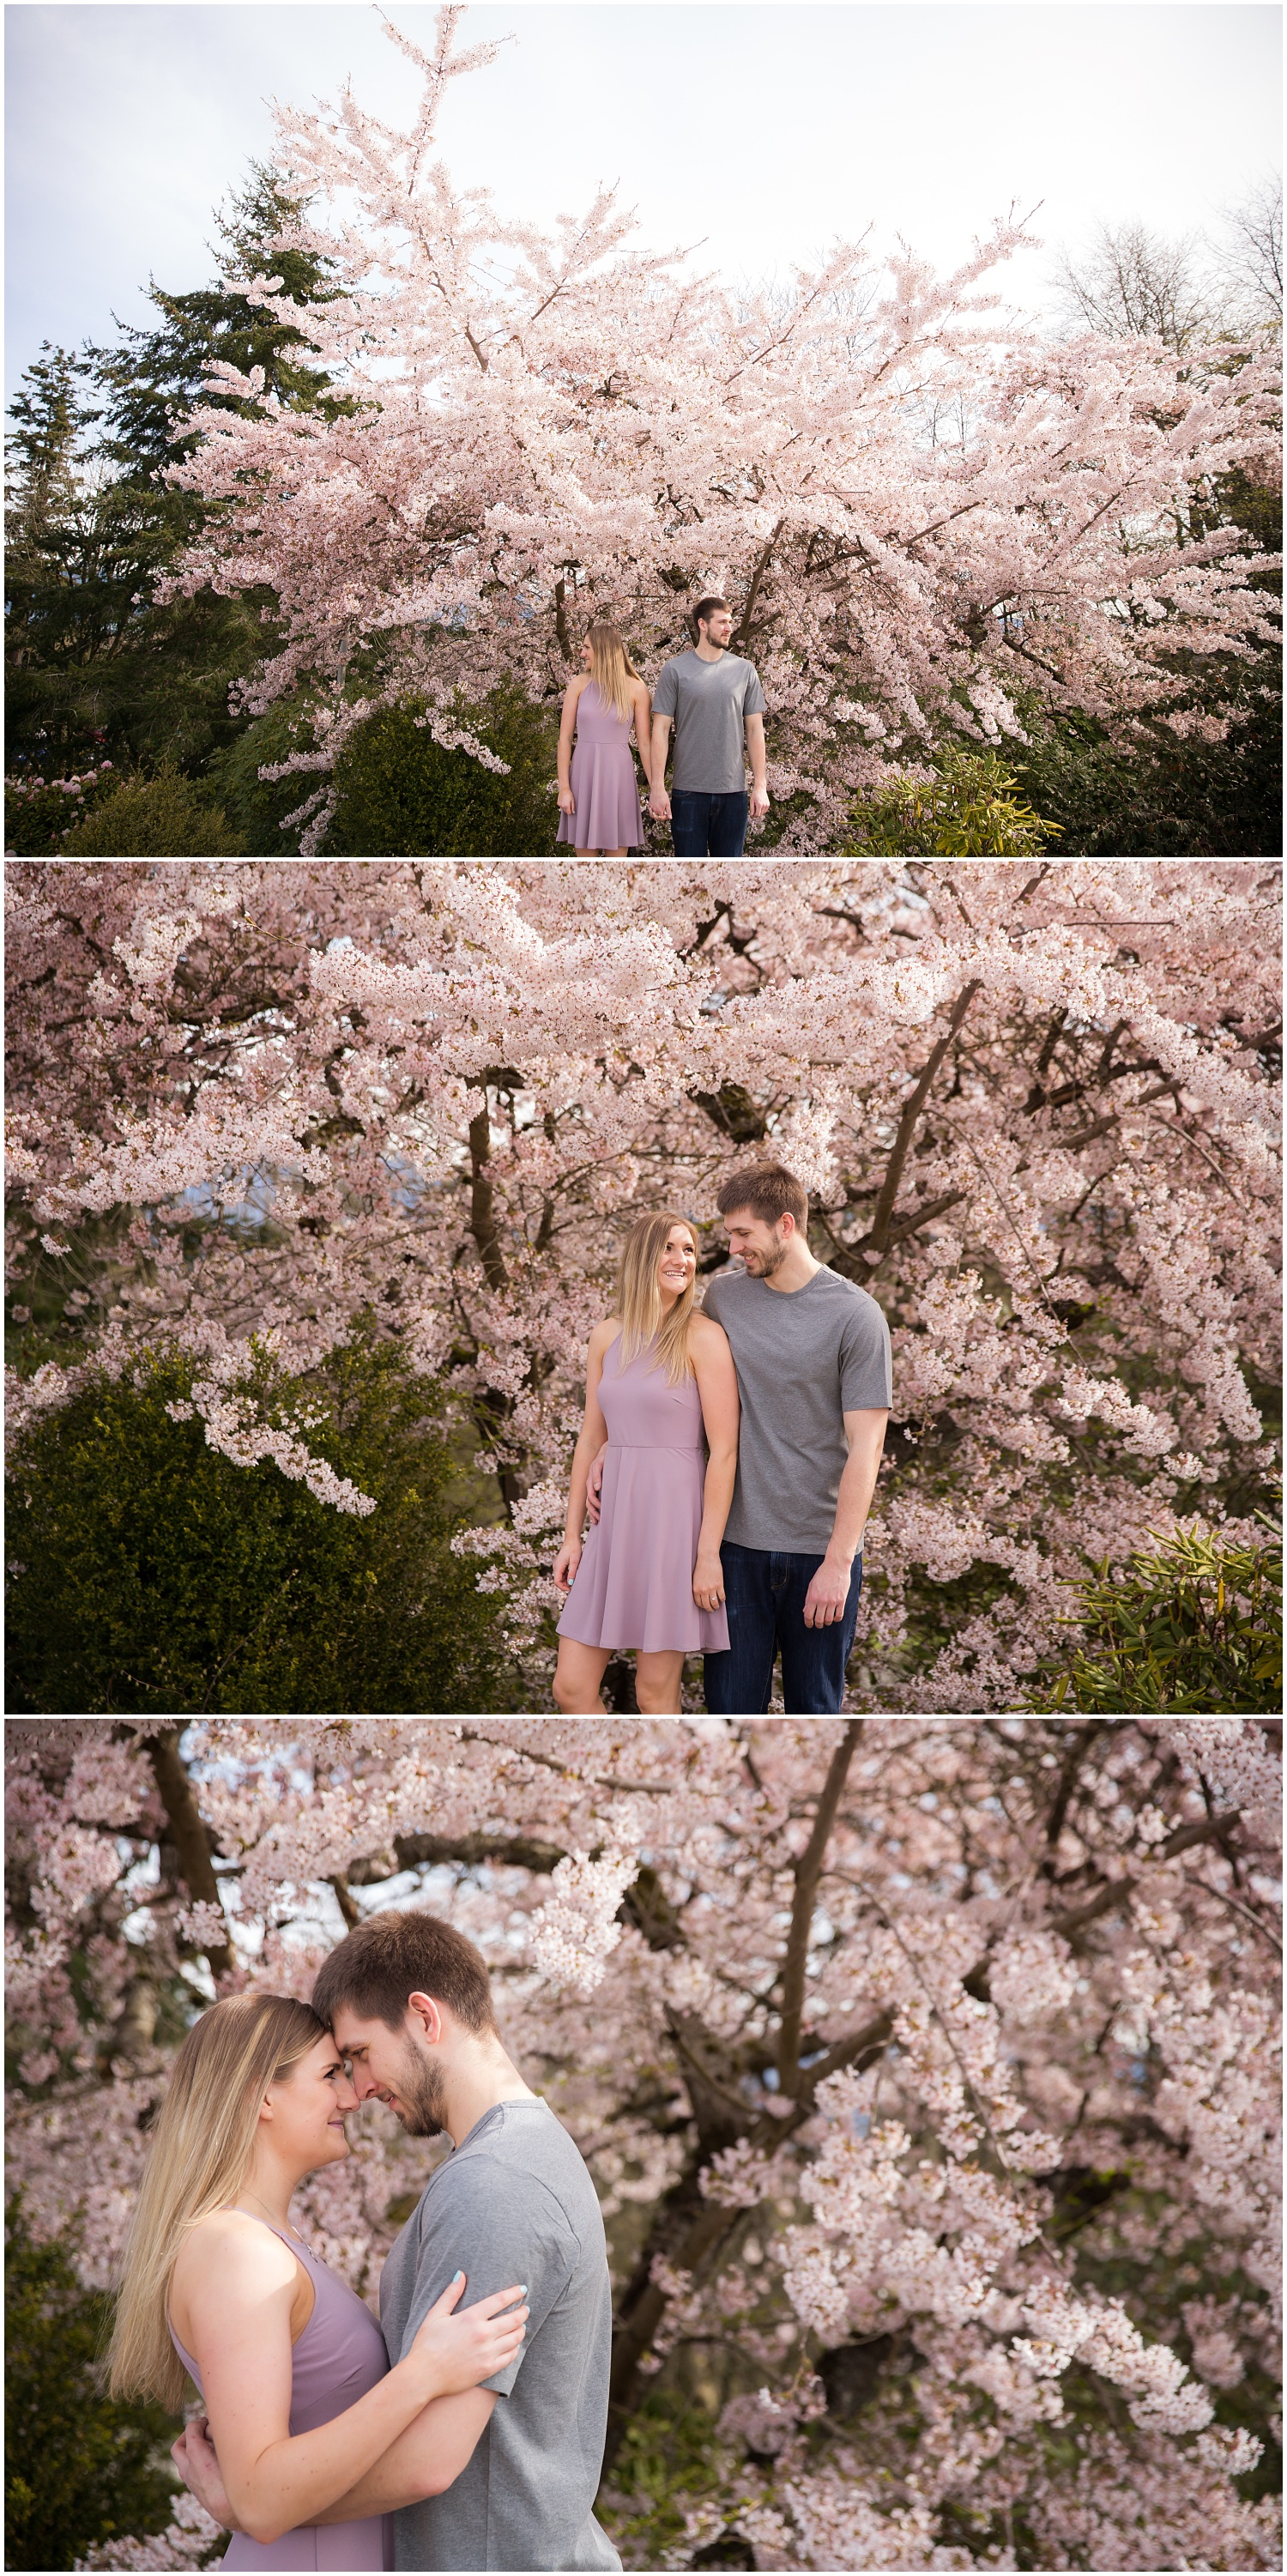 Amazing Day Photography - Cherry Blossom Engagement Session - Queen Elizabeth Park Engagement Session - Vancouver Engagement Photographer  (12).jpg